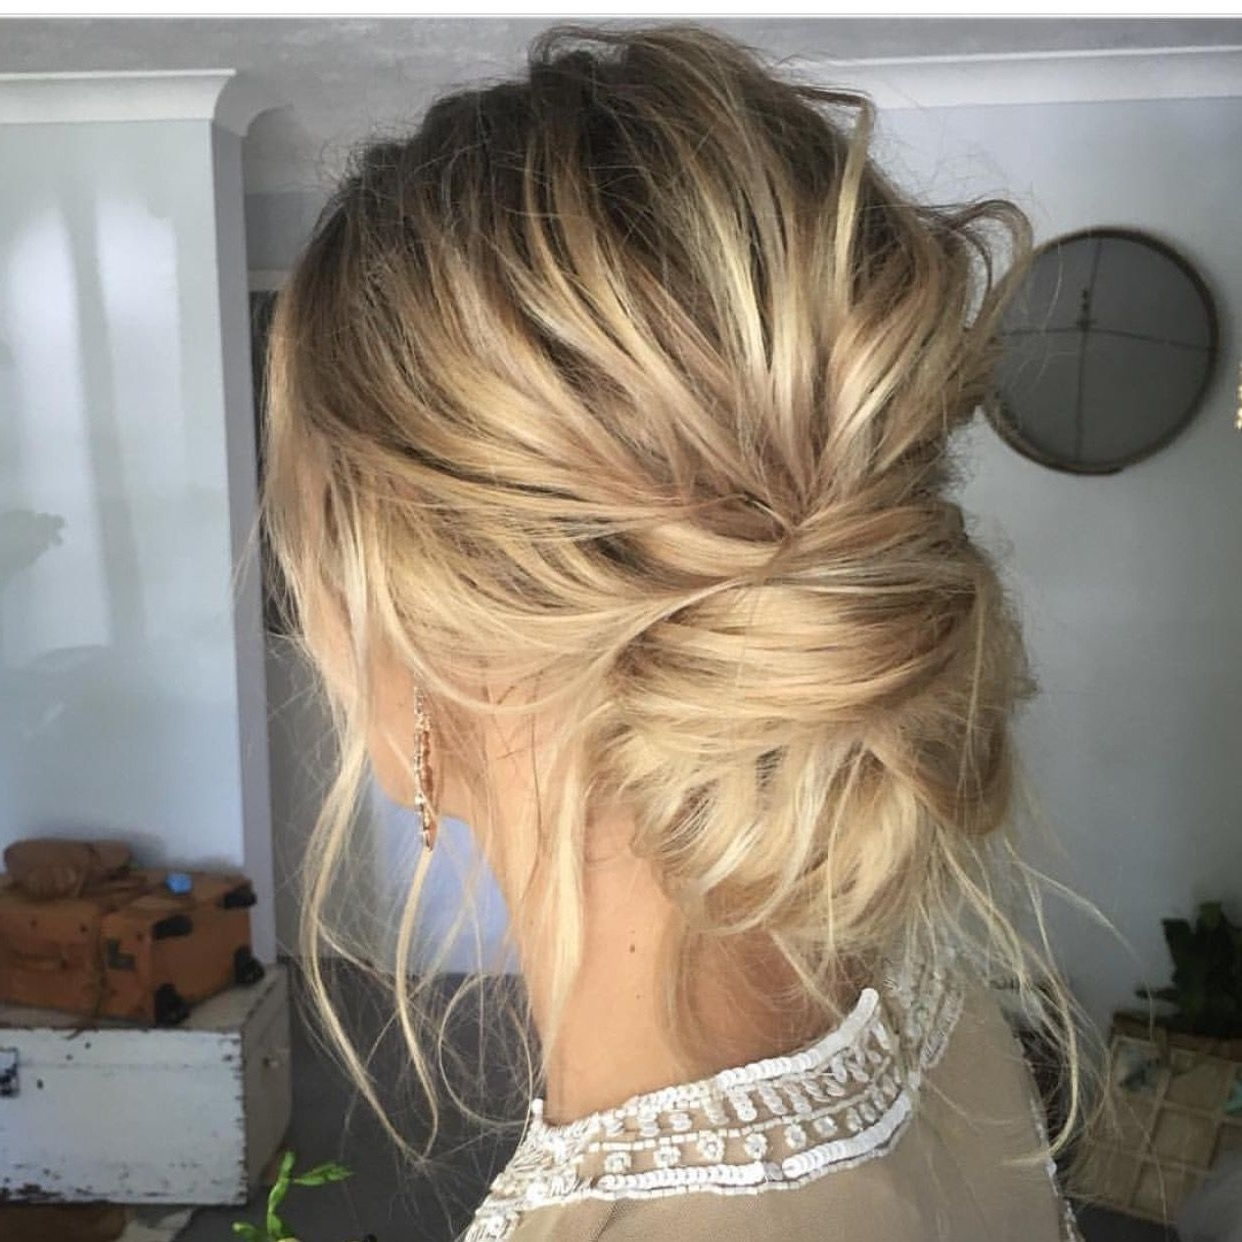 This Low Twisted Bun Is What Textured Hair Dreams Are Made Of! We Pertaining To Popular Low Bun Wedding Hairstyles (View 12 of 15)